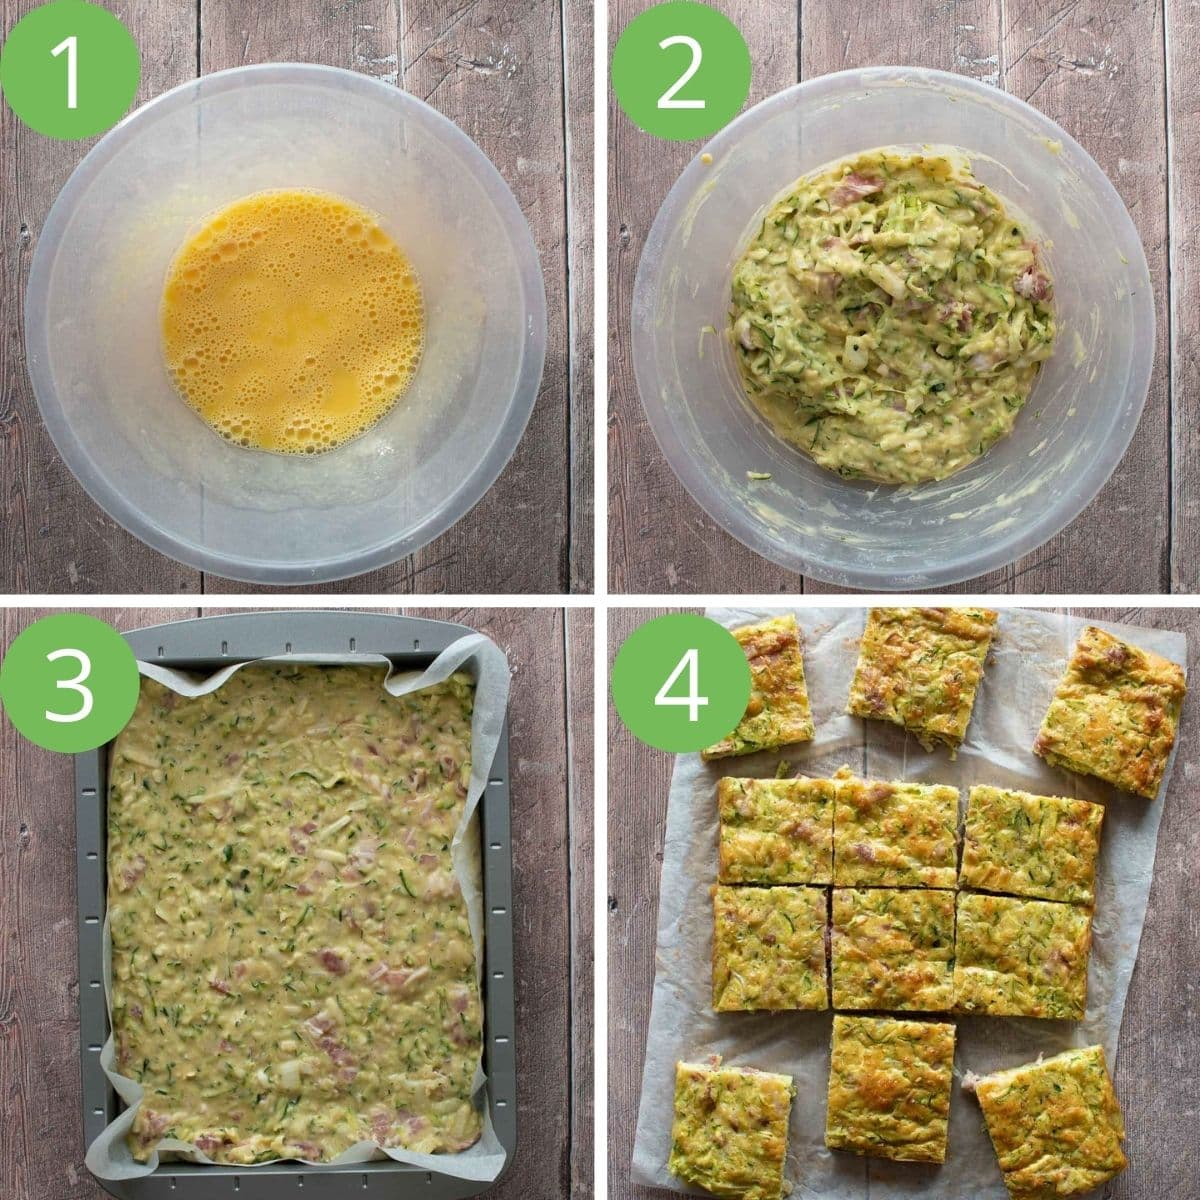 Step by step images showing how to make zucchini slices.